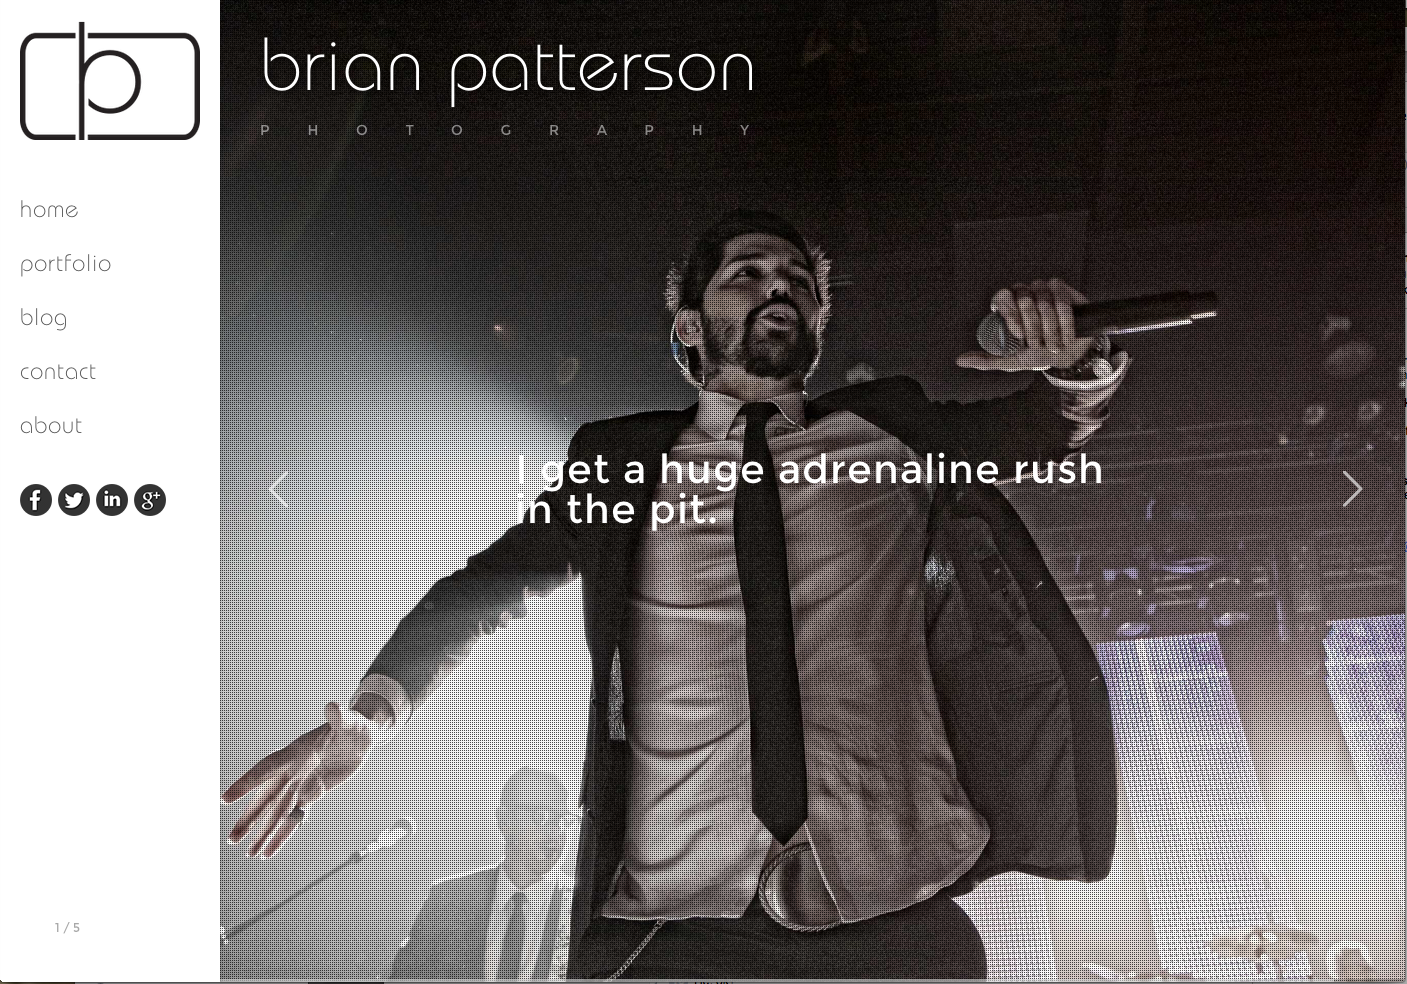 brian patterson photography. entertainment and concert photographer portfolio site. custom designed on wordpress.